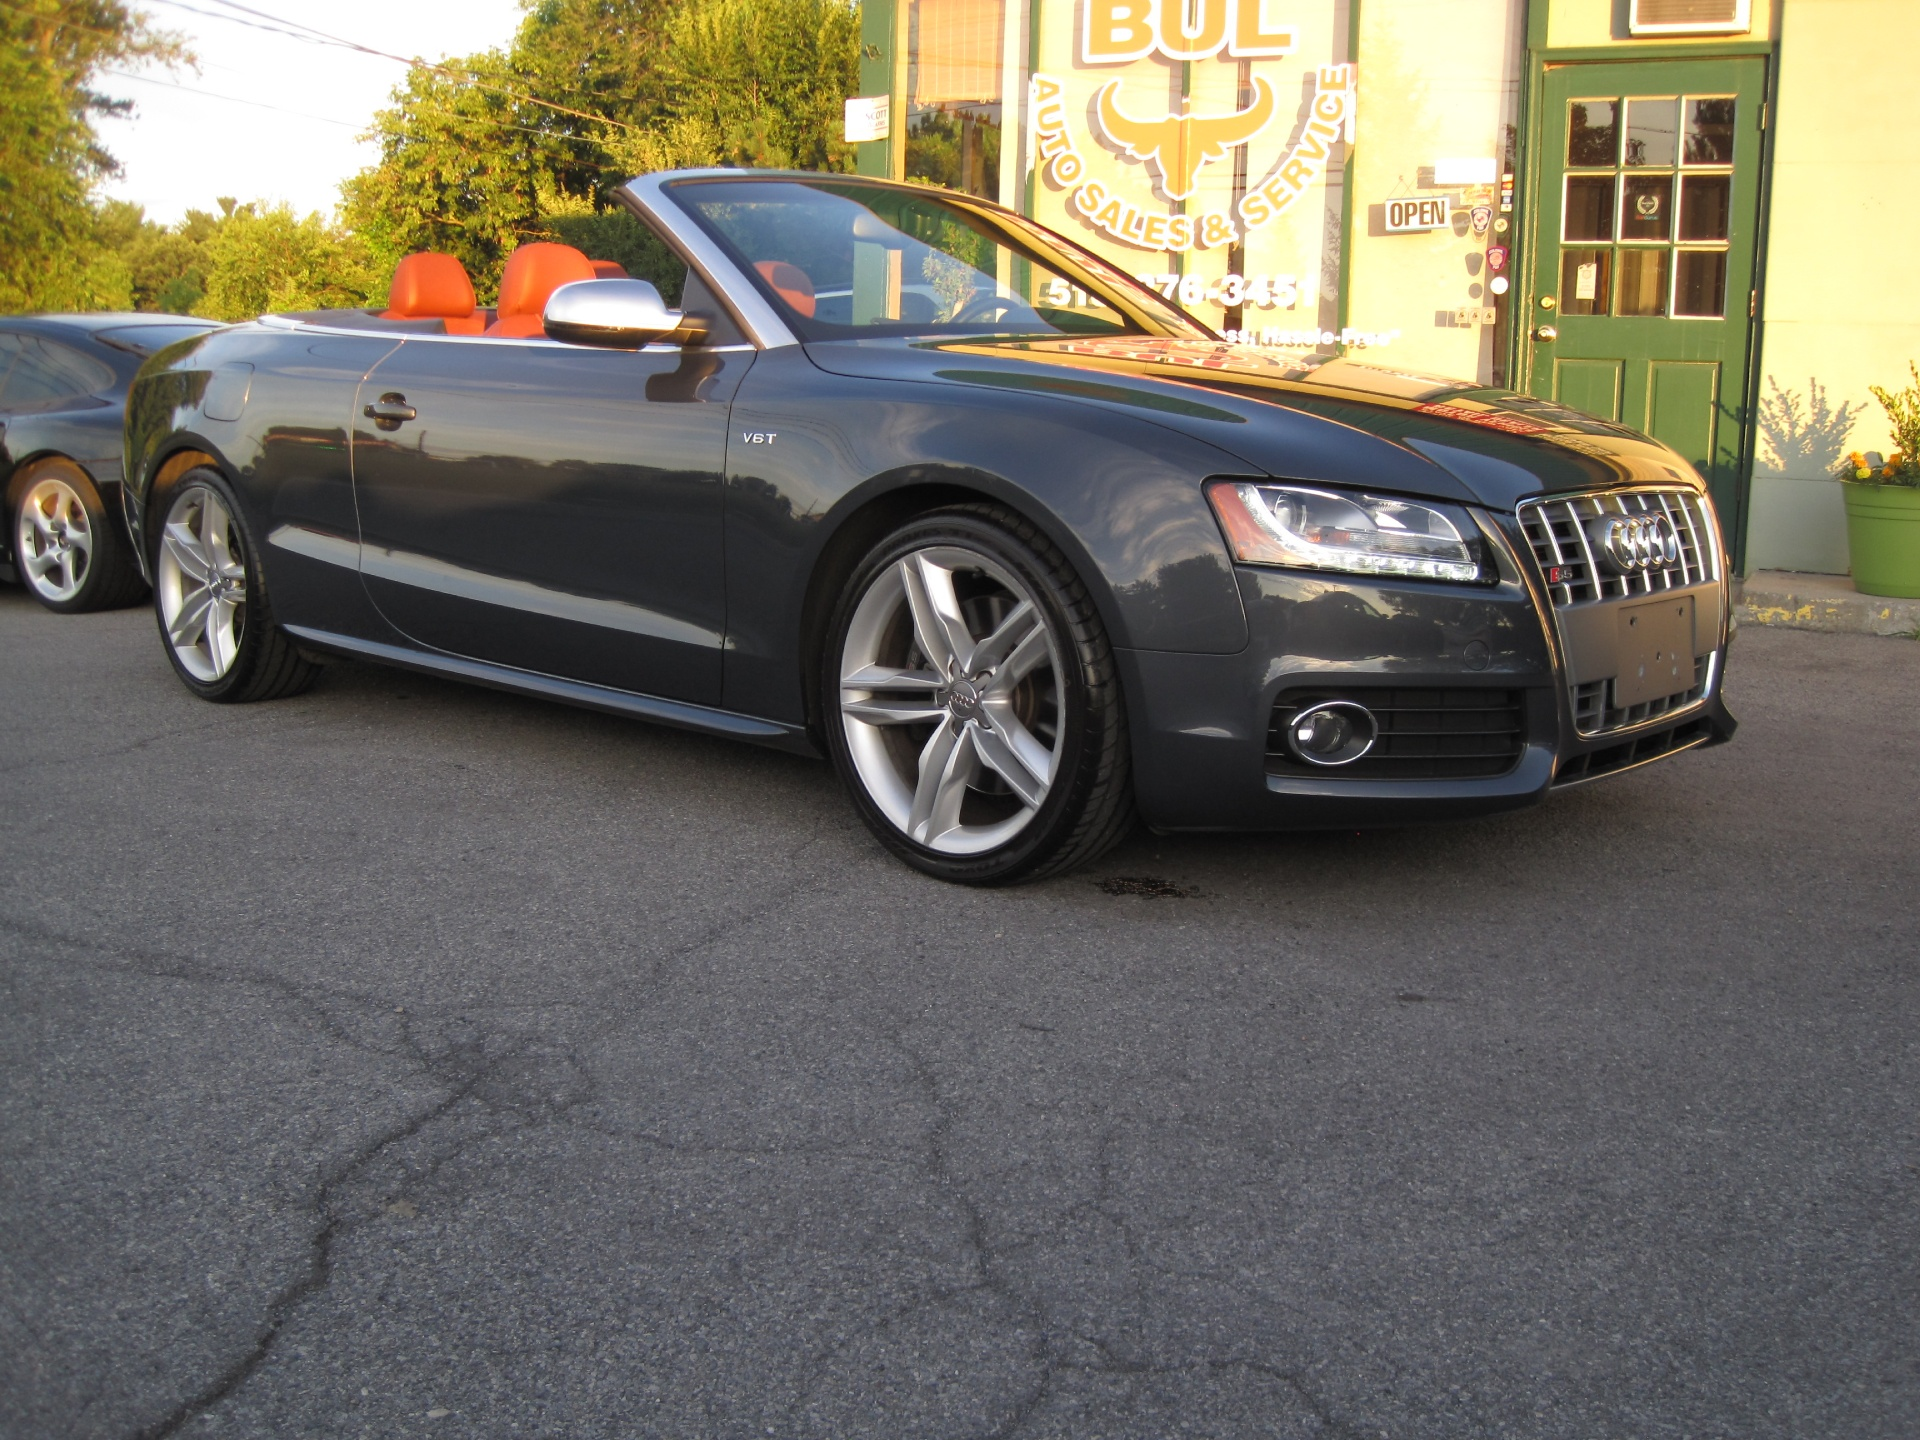 convertible used sale rac bodystyle audi cars for